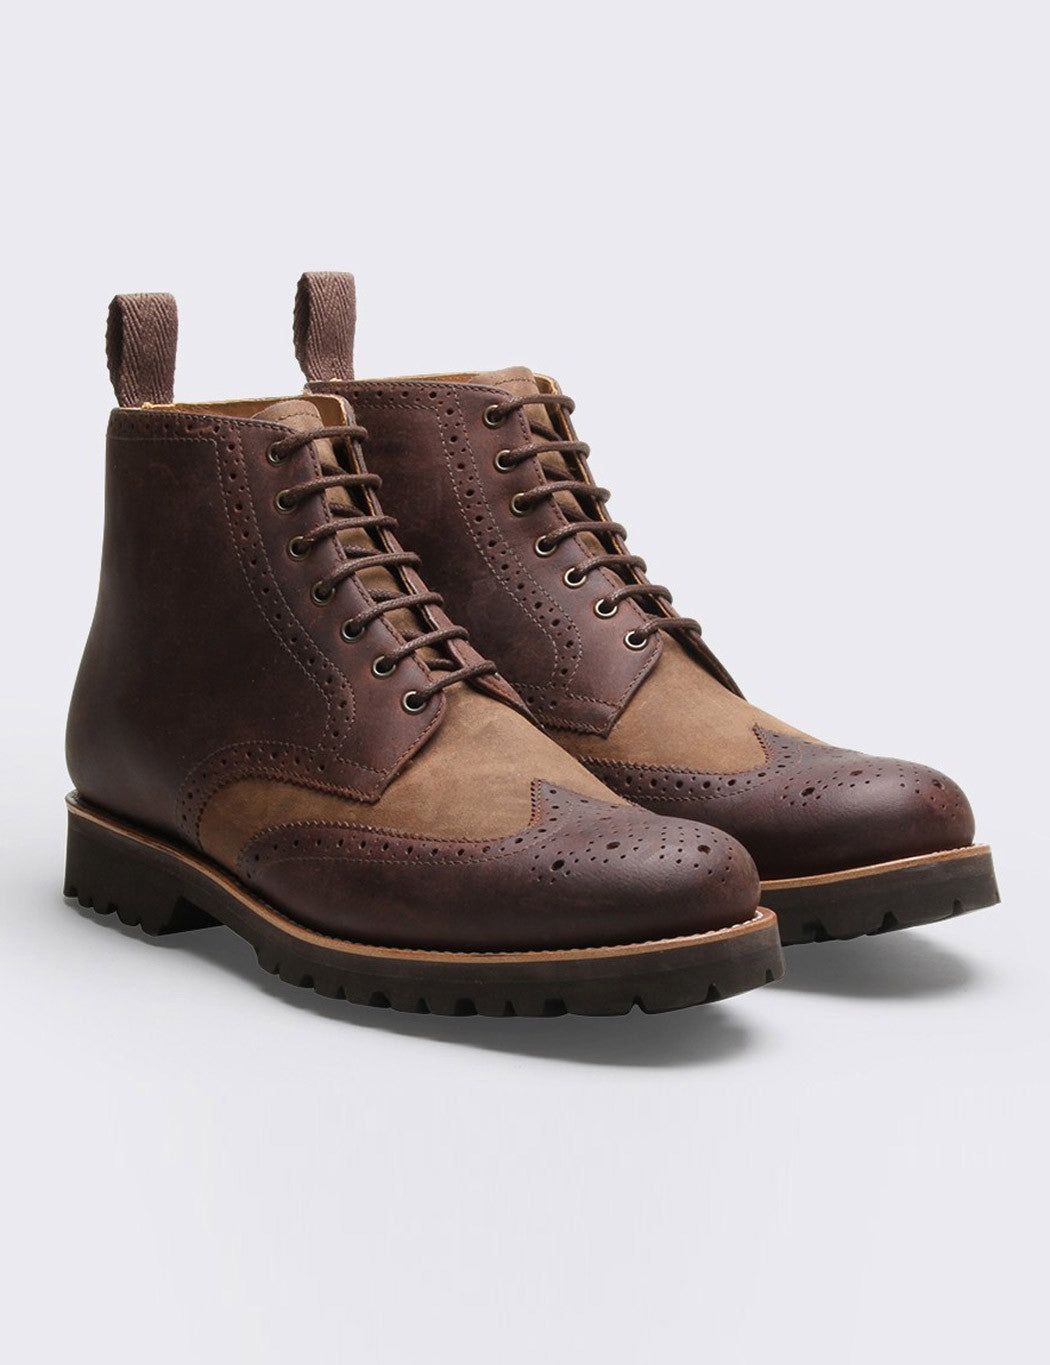 Grenson Sharp Brogue Boot - Walnut/Olive